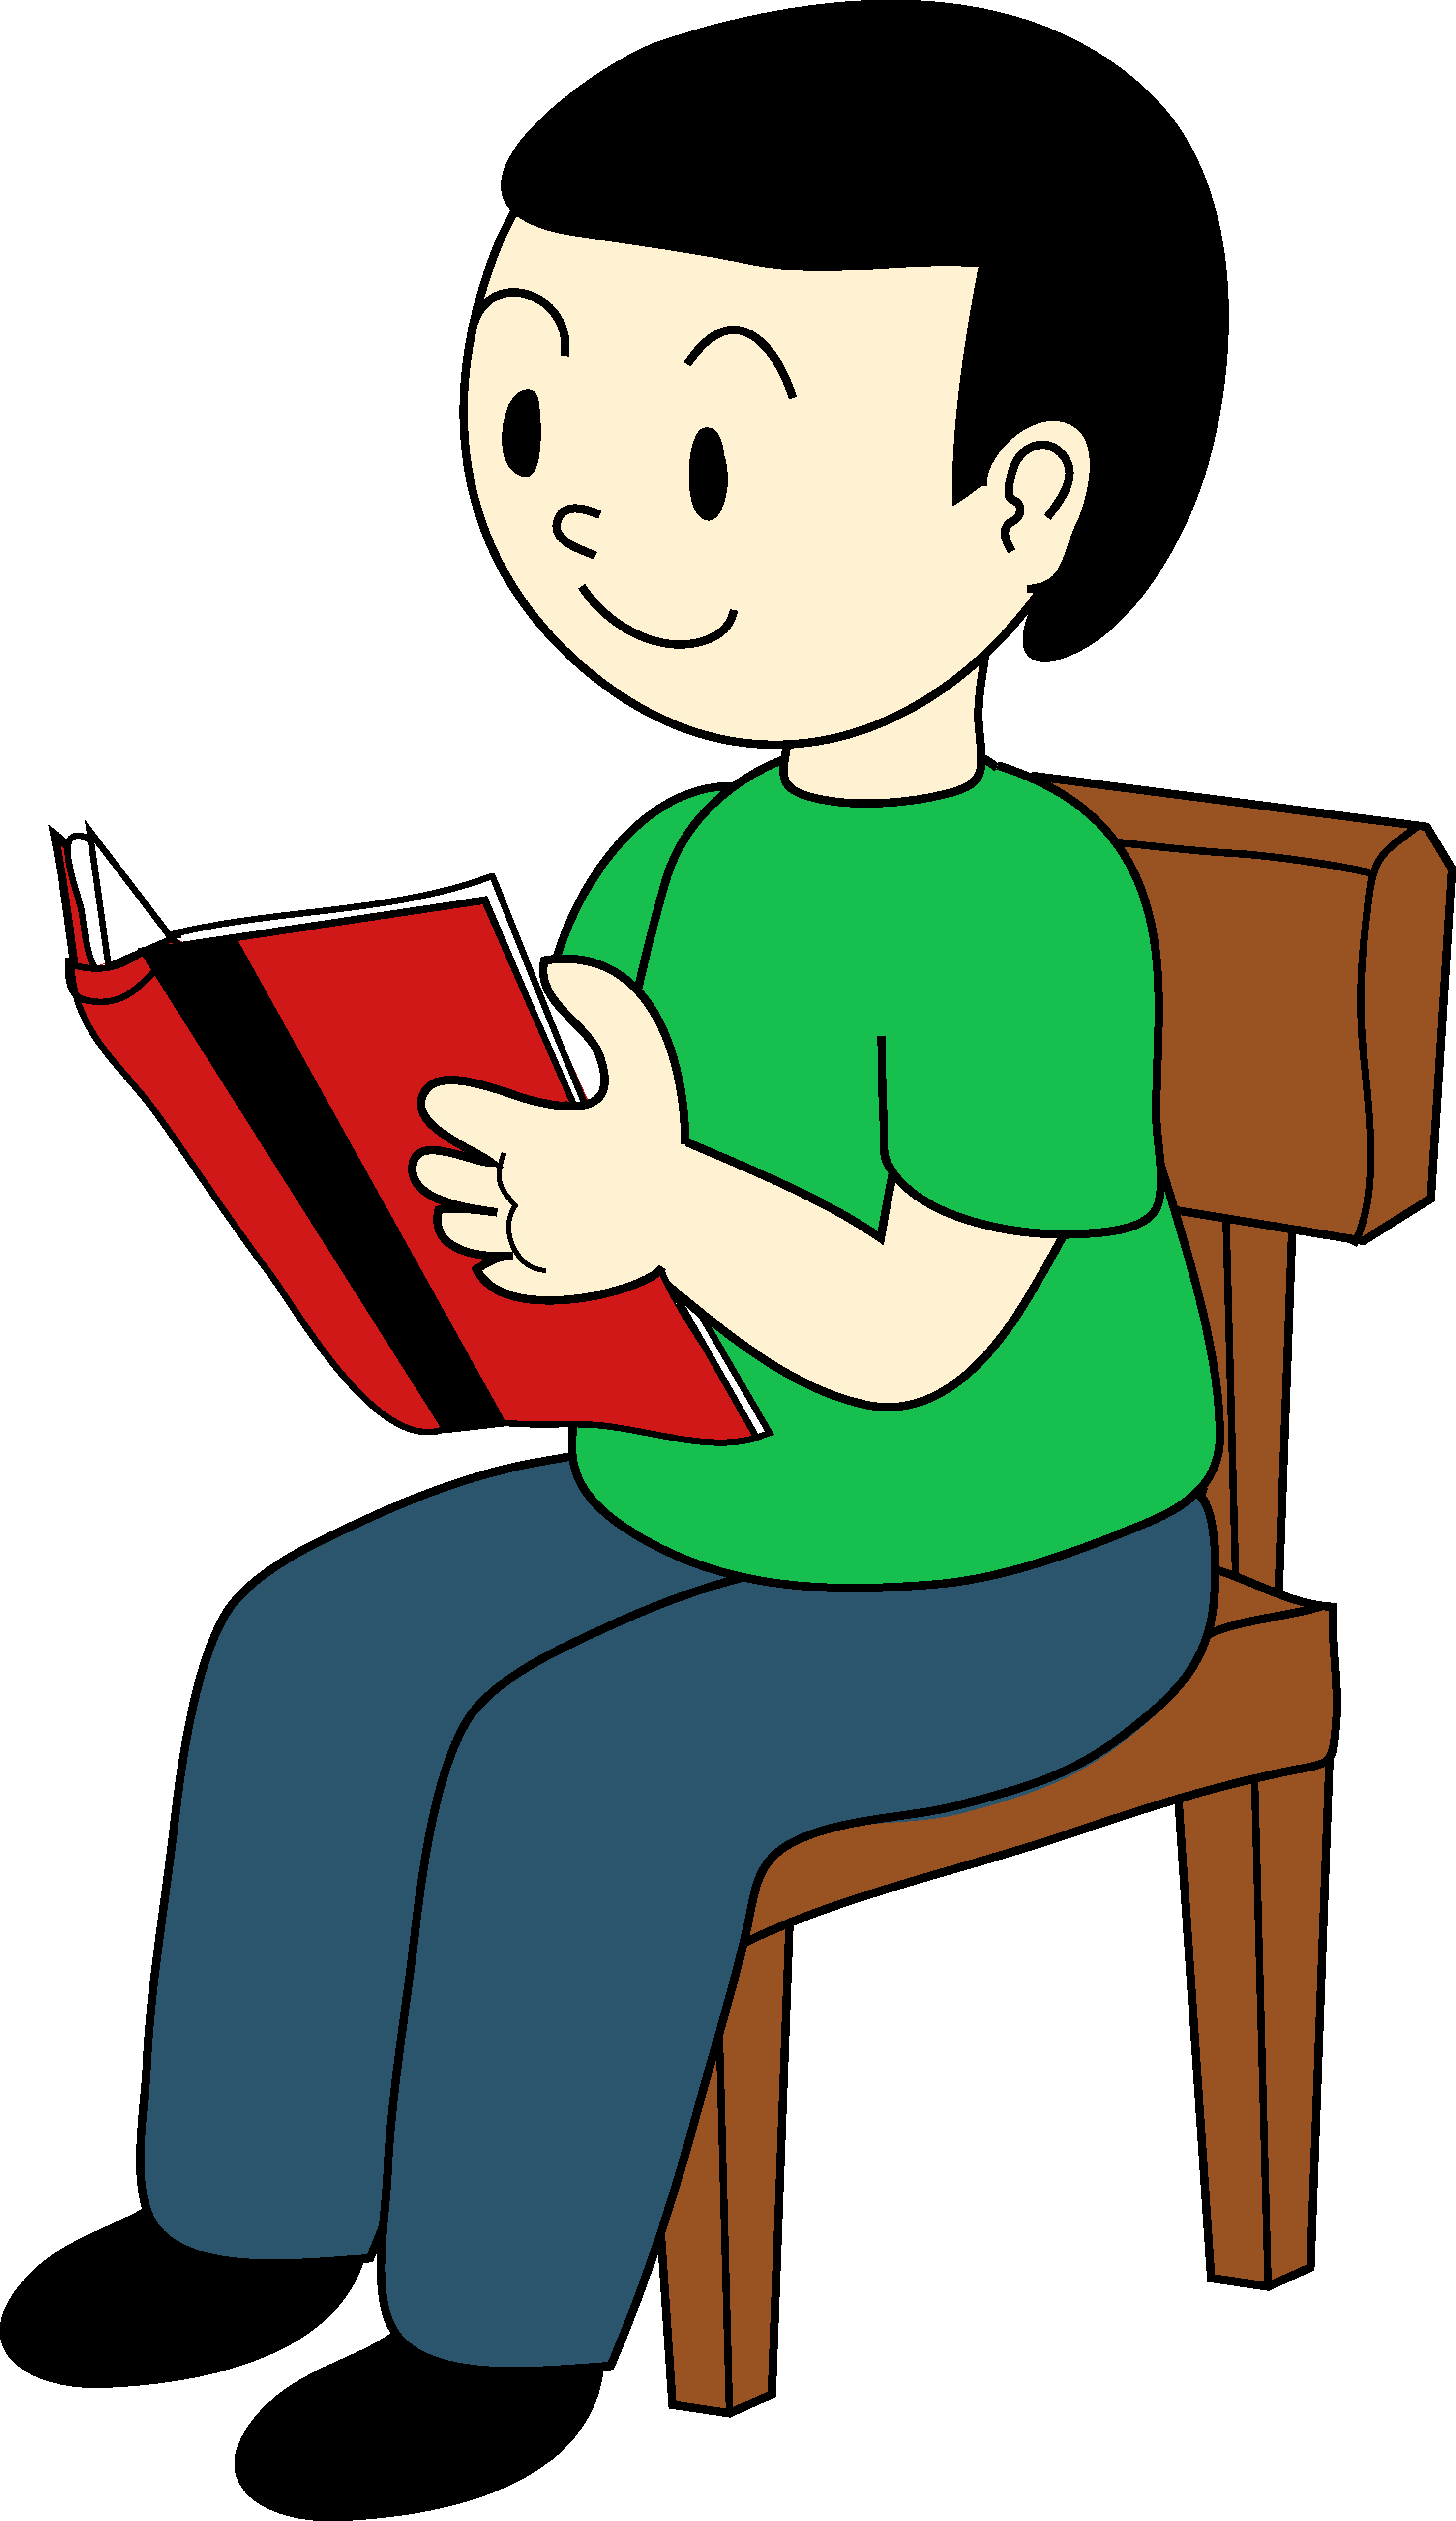 Boy with book clipart banner black and white download Boy sitting on a chair and reading a book clipart free image banner black and white download